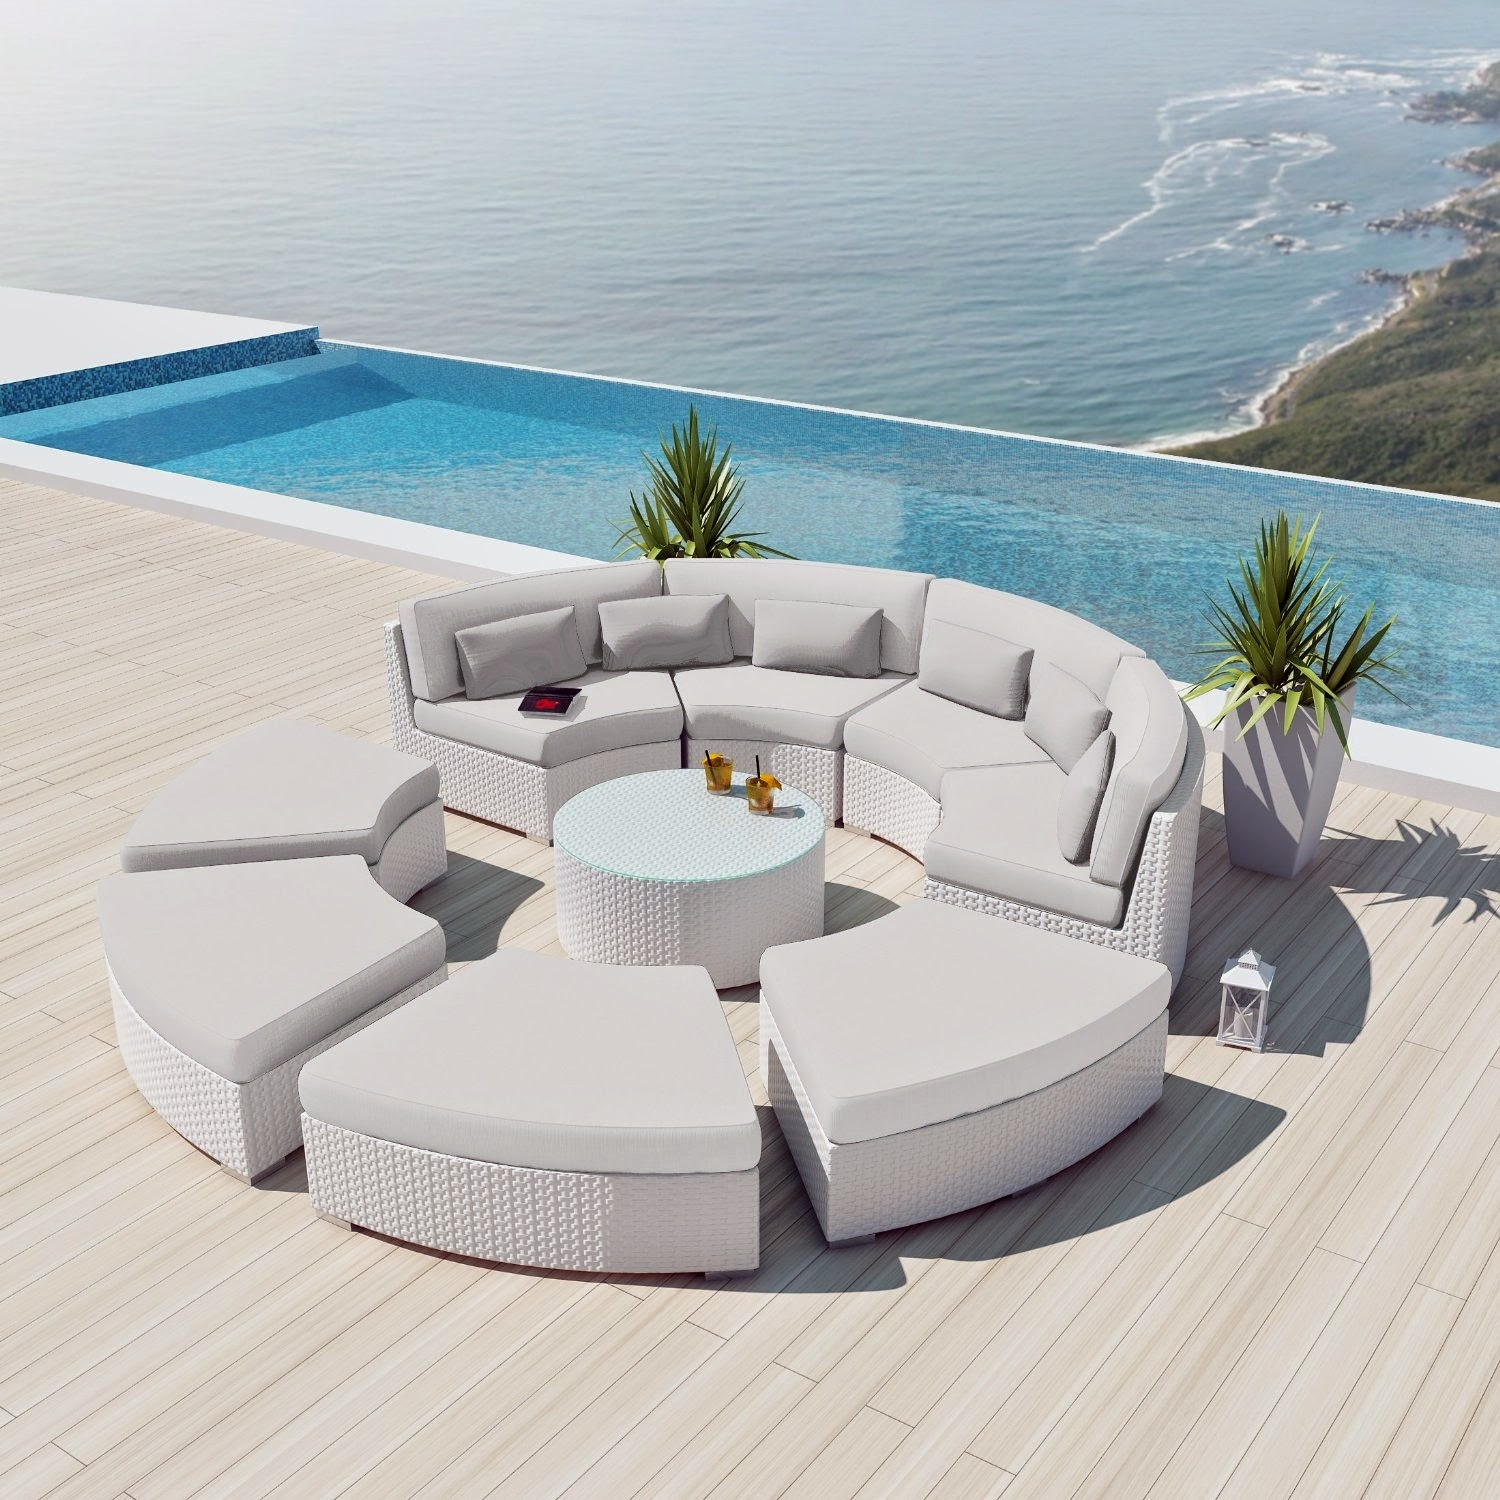 Genial NEW Uduka Modavi 9pcs Outdoor Round Sectional Patio Furniture White Wicker Sofa  Set Off White All